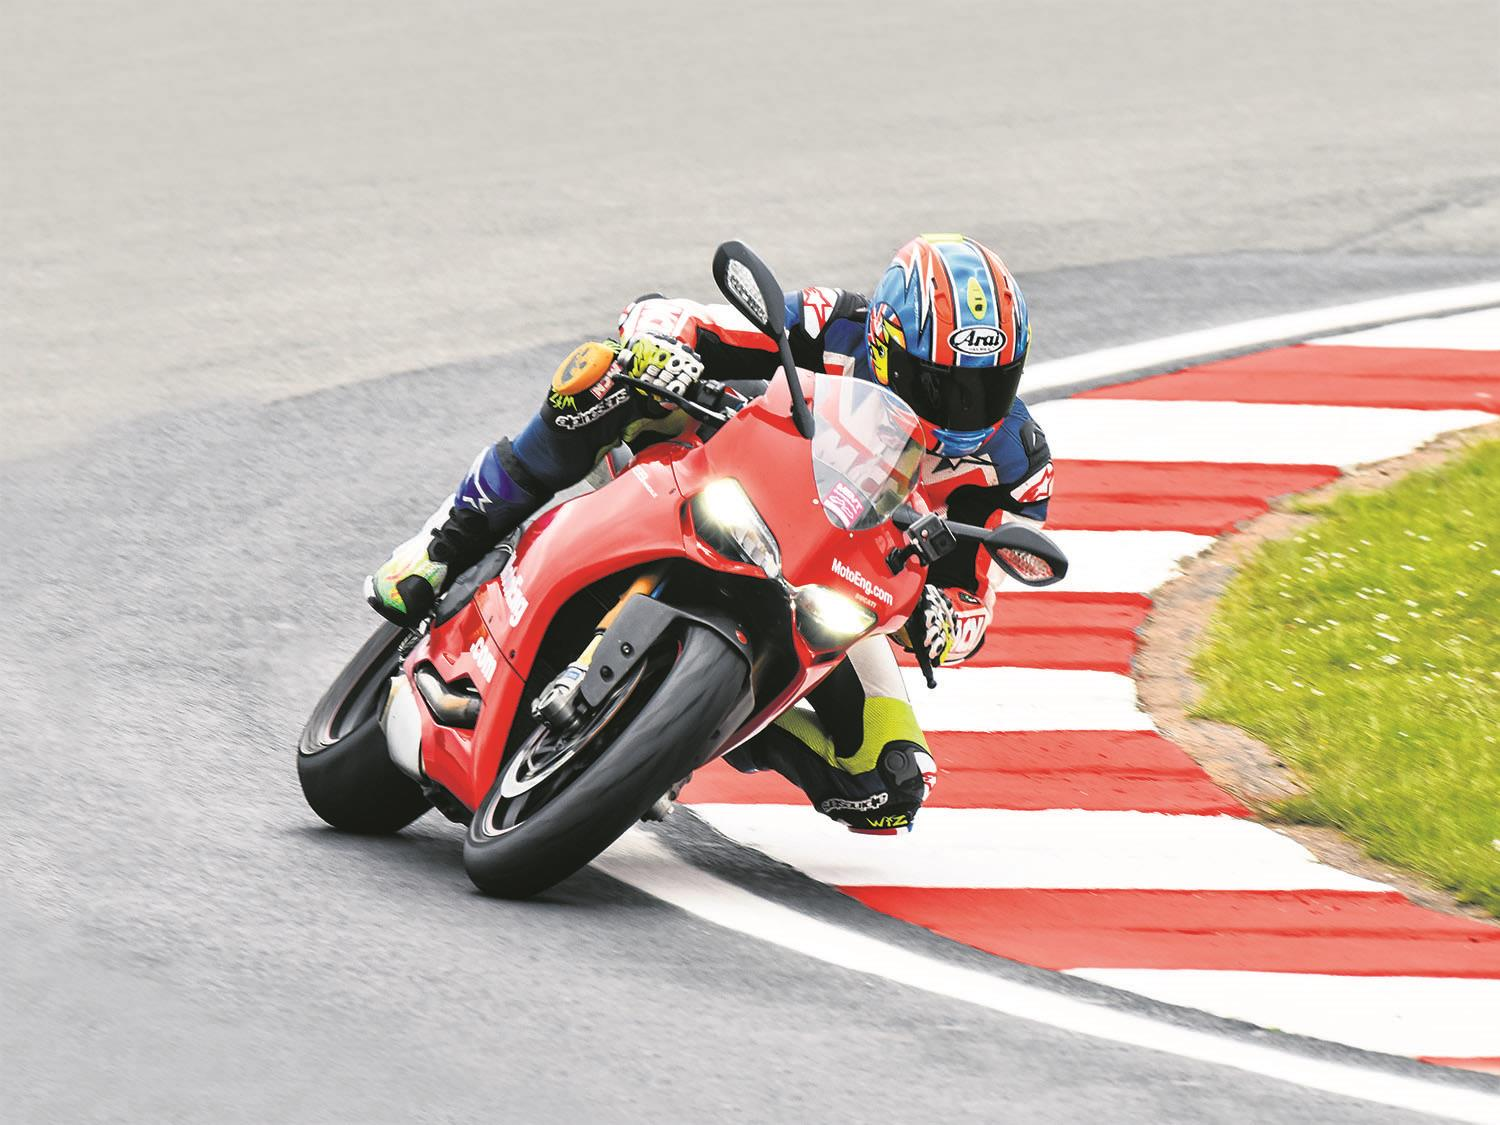 Cornering a motorbike on track